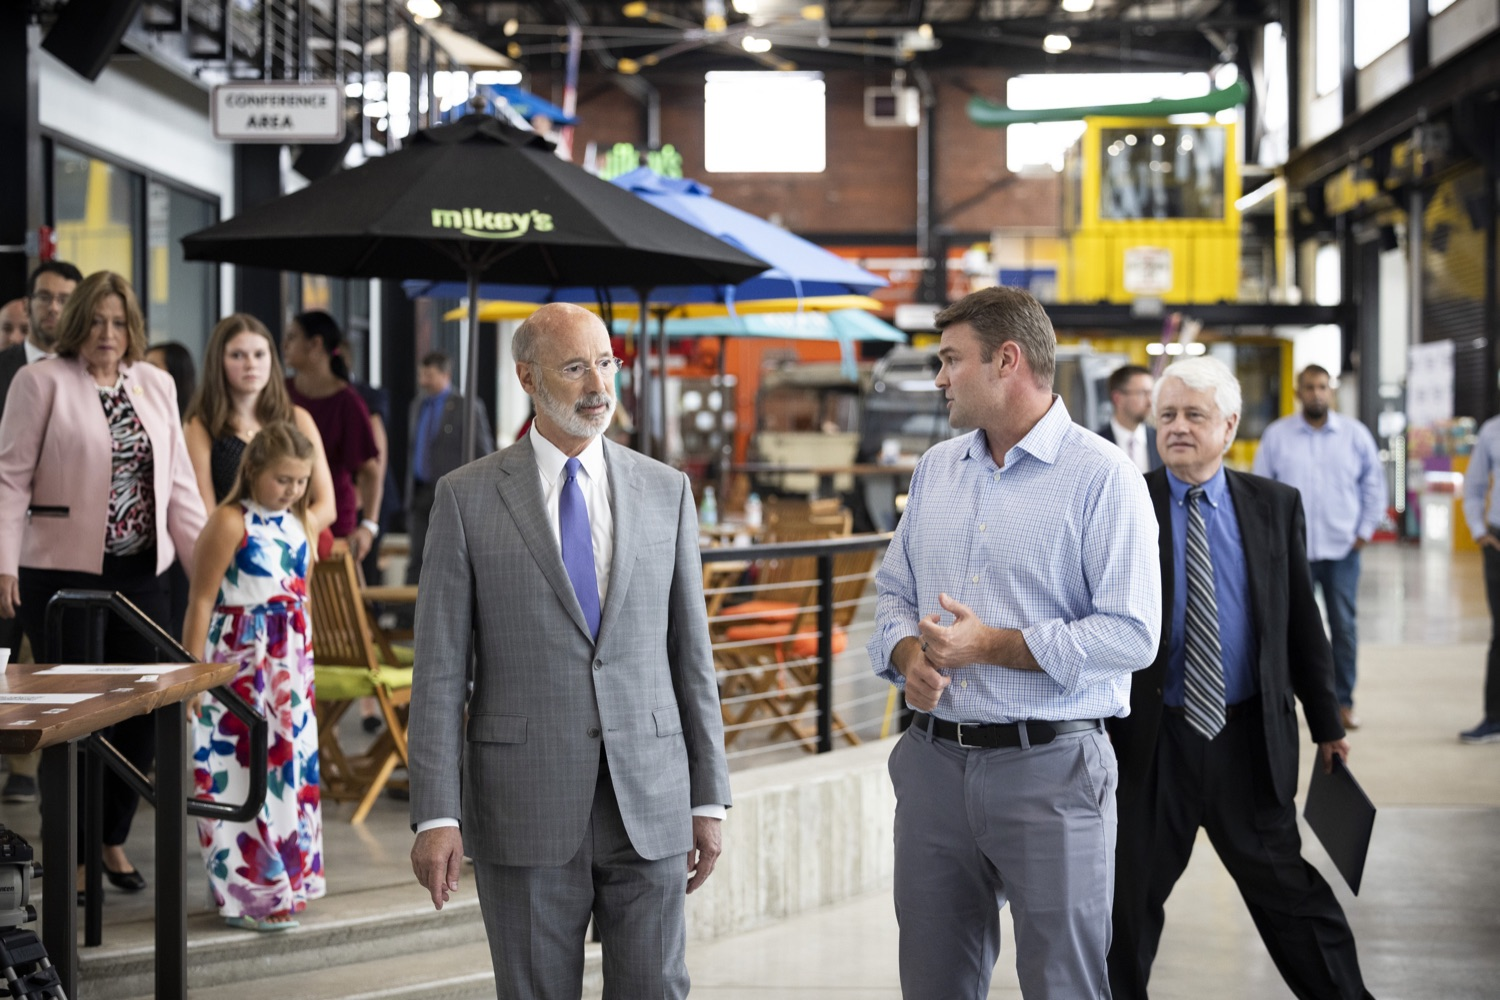 """<a href=""""https://filesource.wostreaming.net/commonwealthofpa/photo/18941_gov_economicDevelopment_dz_011.jpg"""" target=""""_blank"""">⇣Download Photo<br></a>Keith Caldwell, Partner  Factory LLC giving Pennsylvania Governor Tom Wolf a tour of Factory LLC.  Governor Tom Wolf today visited Factory LLC in Bethlehem to tour the facility and highlight the importance of investing in Pennsylvanias start-up companies. During the visit, he met with companies affiliated with Factory, including Stuffed Puffs®, which received a $1 million funding proposal from the commonwealth in 2019 to expand its manufacturing operations and create jobs, Mikeys®, Pipcorn®, Honey Stinger®, and ROAR® Organic. Bethlehem, PA  July 19, 2021"""